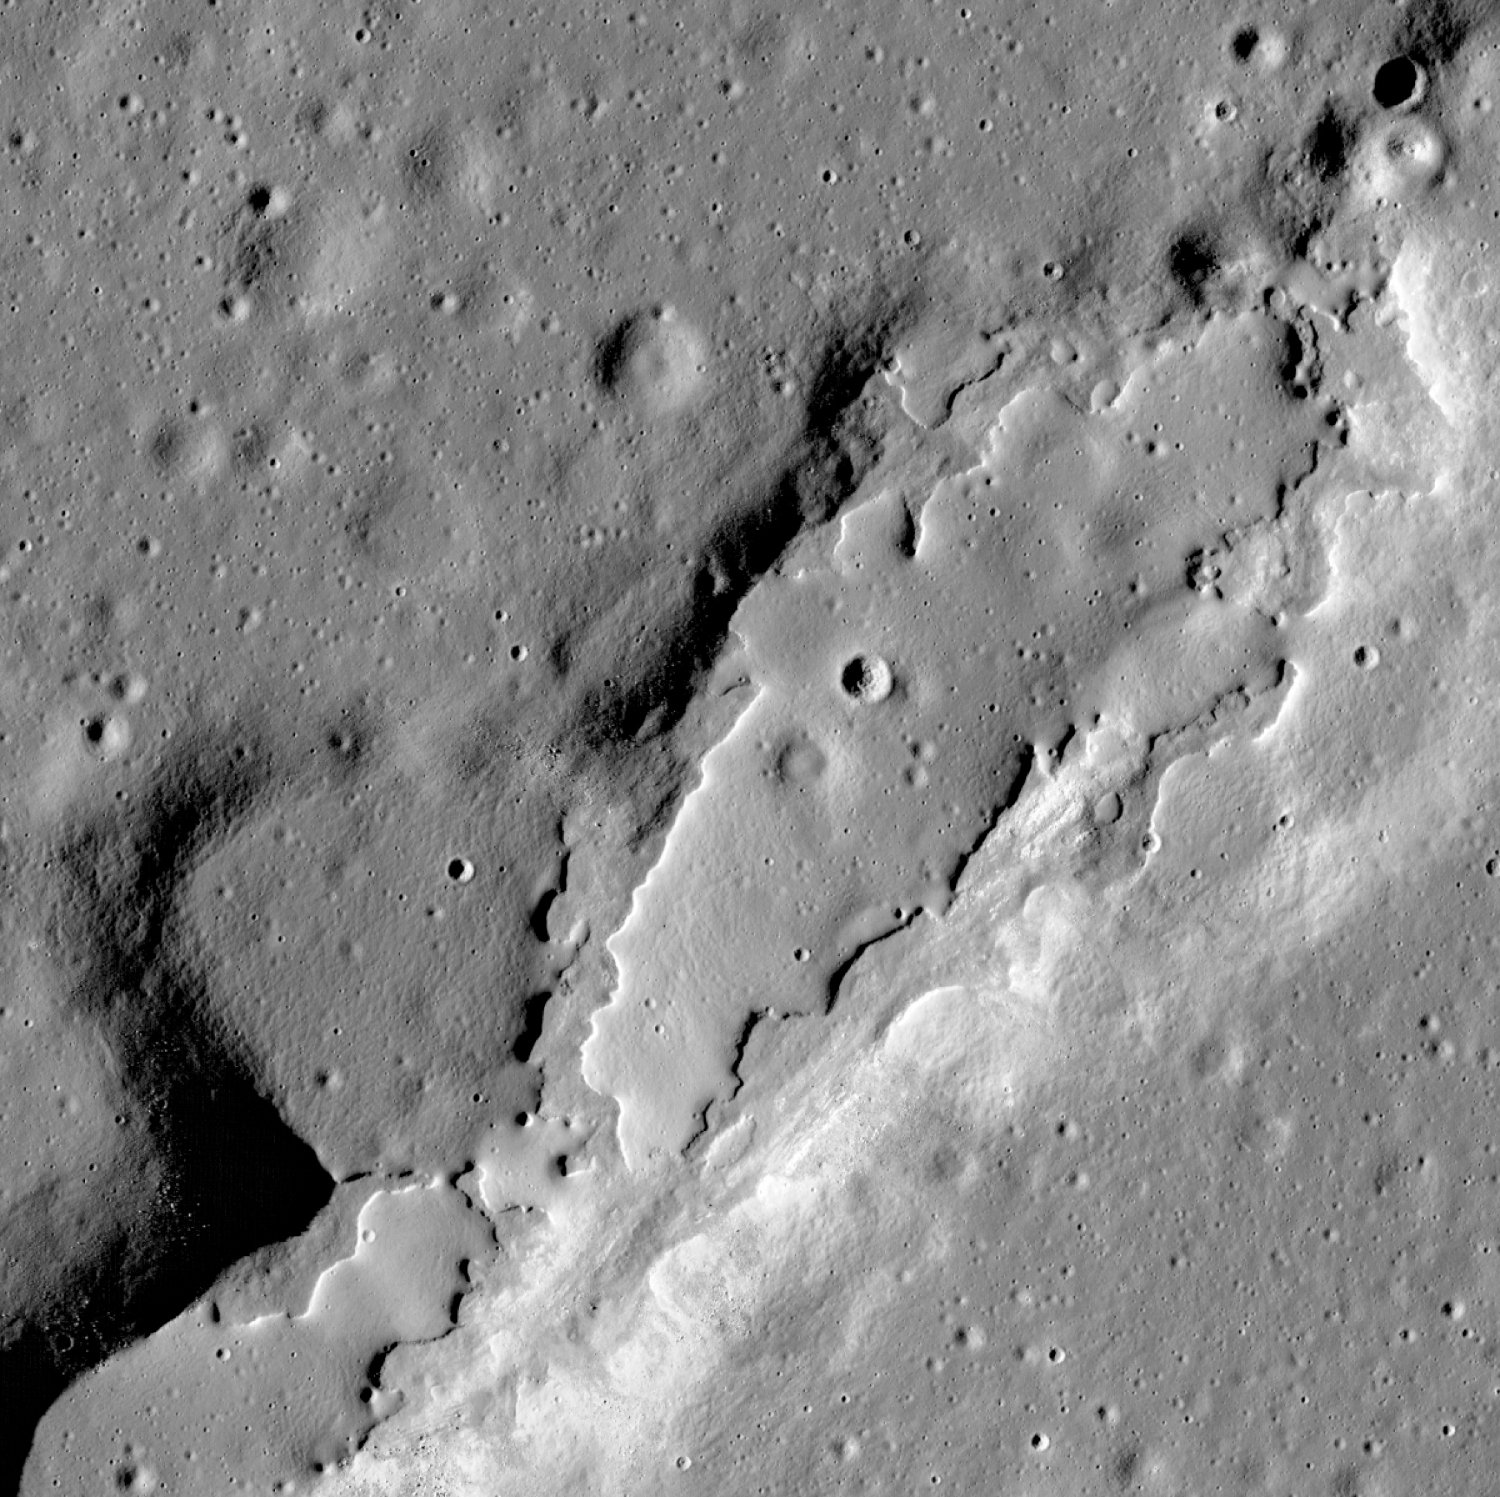 Lava flows have spread across the floor of this large collapsed area. Their lack of impact craters and steep sides show that they erupted relatively recently.  The LROC team reported in Nature in 2014 that some of these volcanic features could be younger than 100 million years old.  Their adolescence suggests that the moon's interior is perhaps hotter than once thought, and that future eruptions could occur on its surface. Credit: NASA/Goddard Space Flight Center/Arizona State University